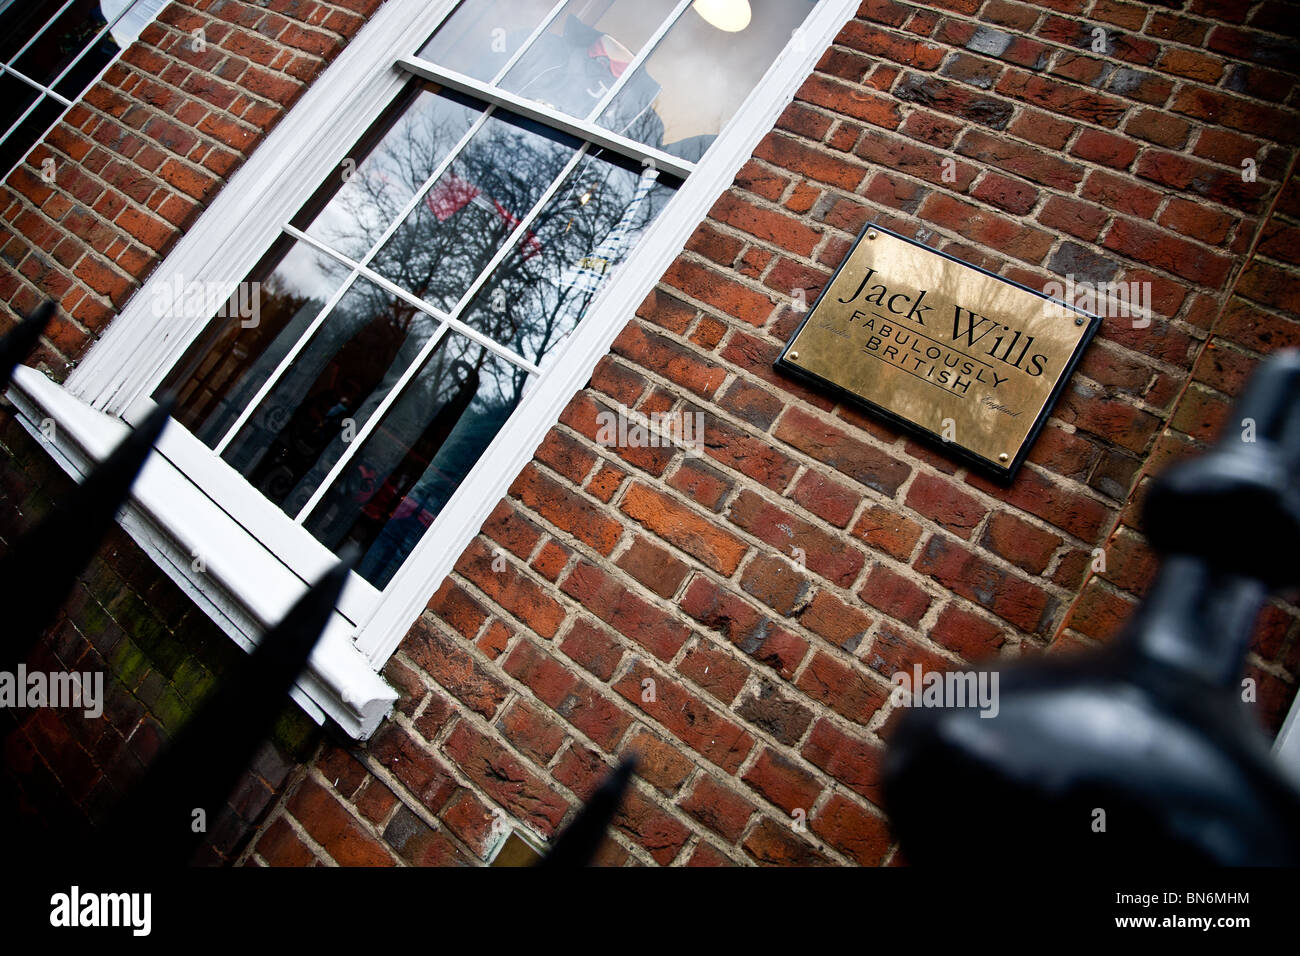 Jack Wills Shop in Church Street, Reigate , Surrey - Stock Image